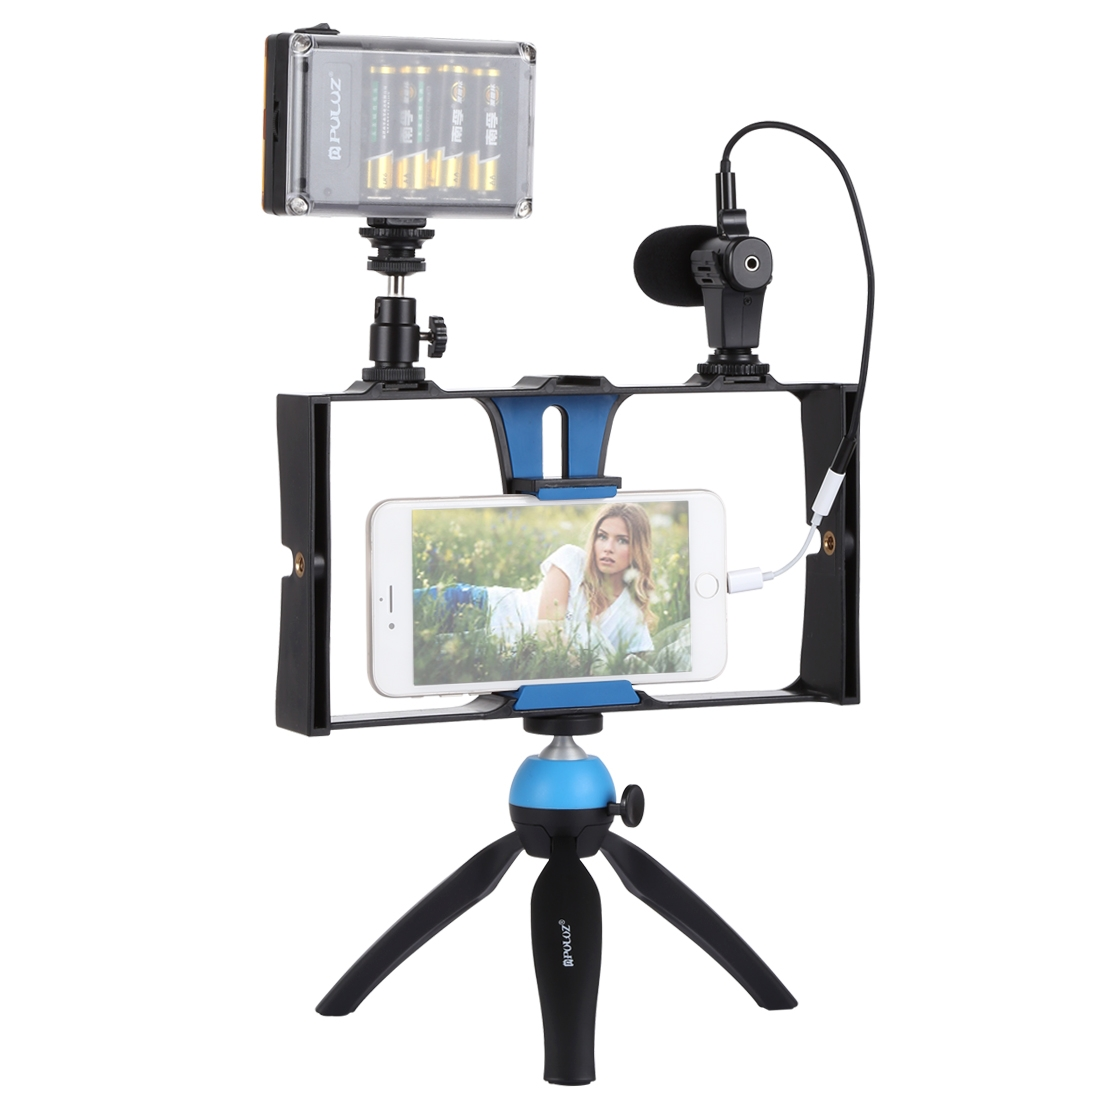 PULUZ 4 in 1 Live Broadcast LED Selfie Smartphone Video Rig Kits